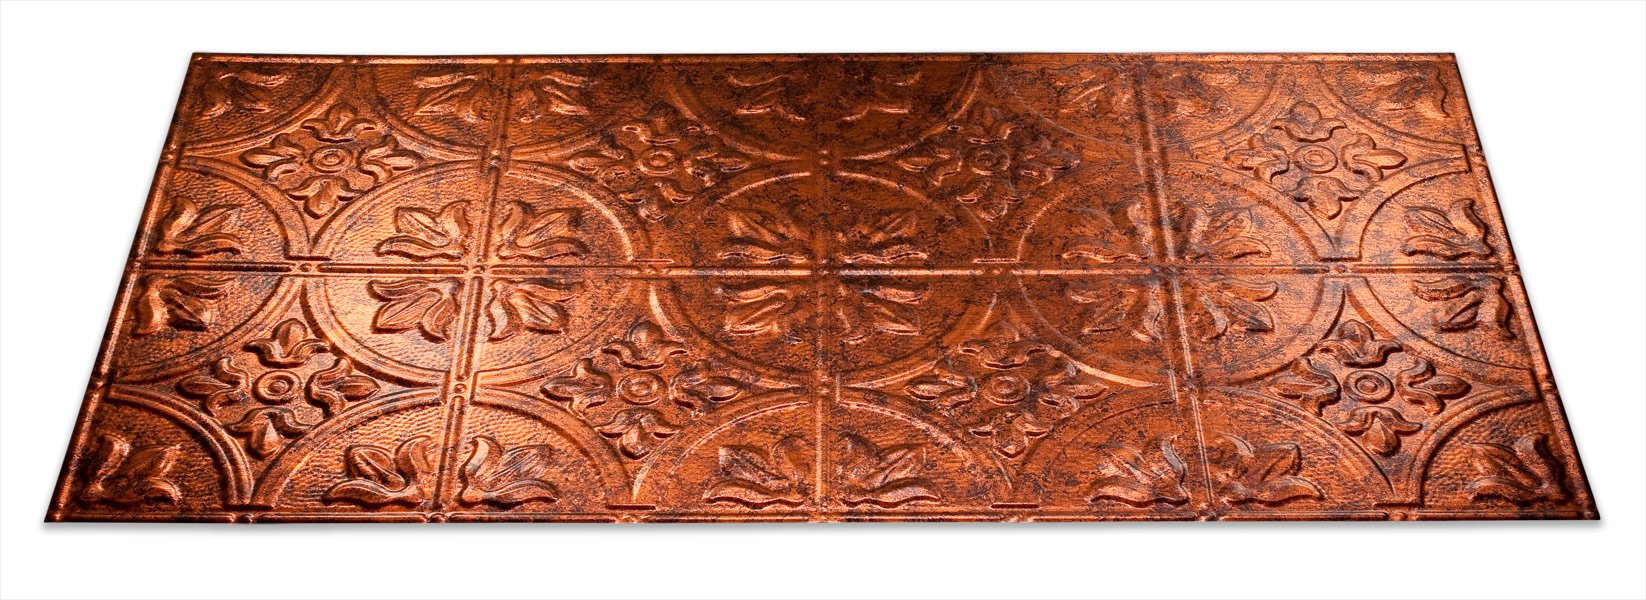 Fasade Easy Installation Traditional 2 Moonstone Copper Glue Up Ceiling Tile / Ceiling Panel (2' x 4' Panel)